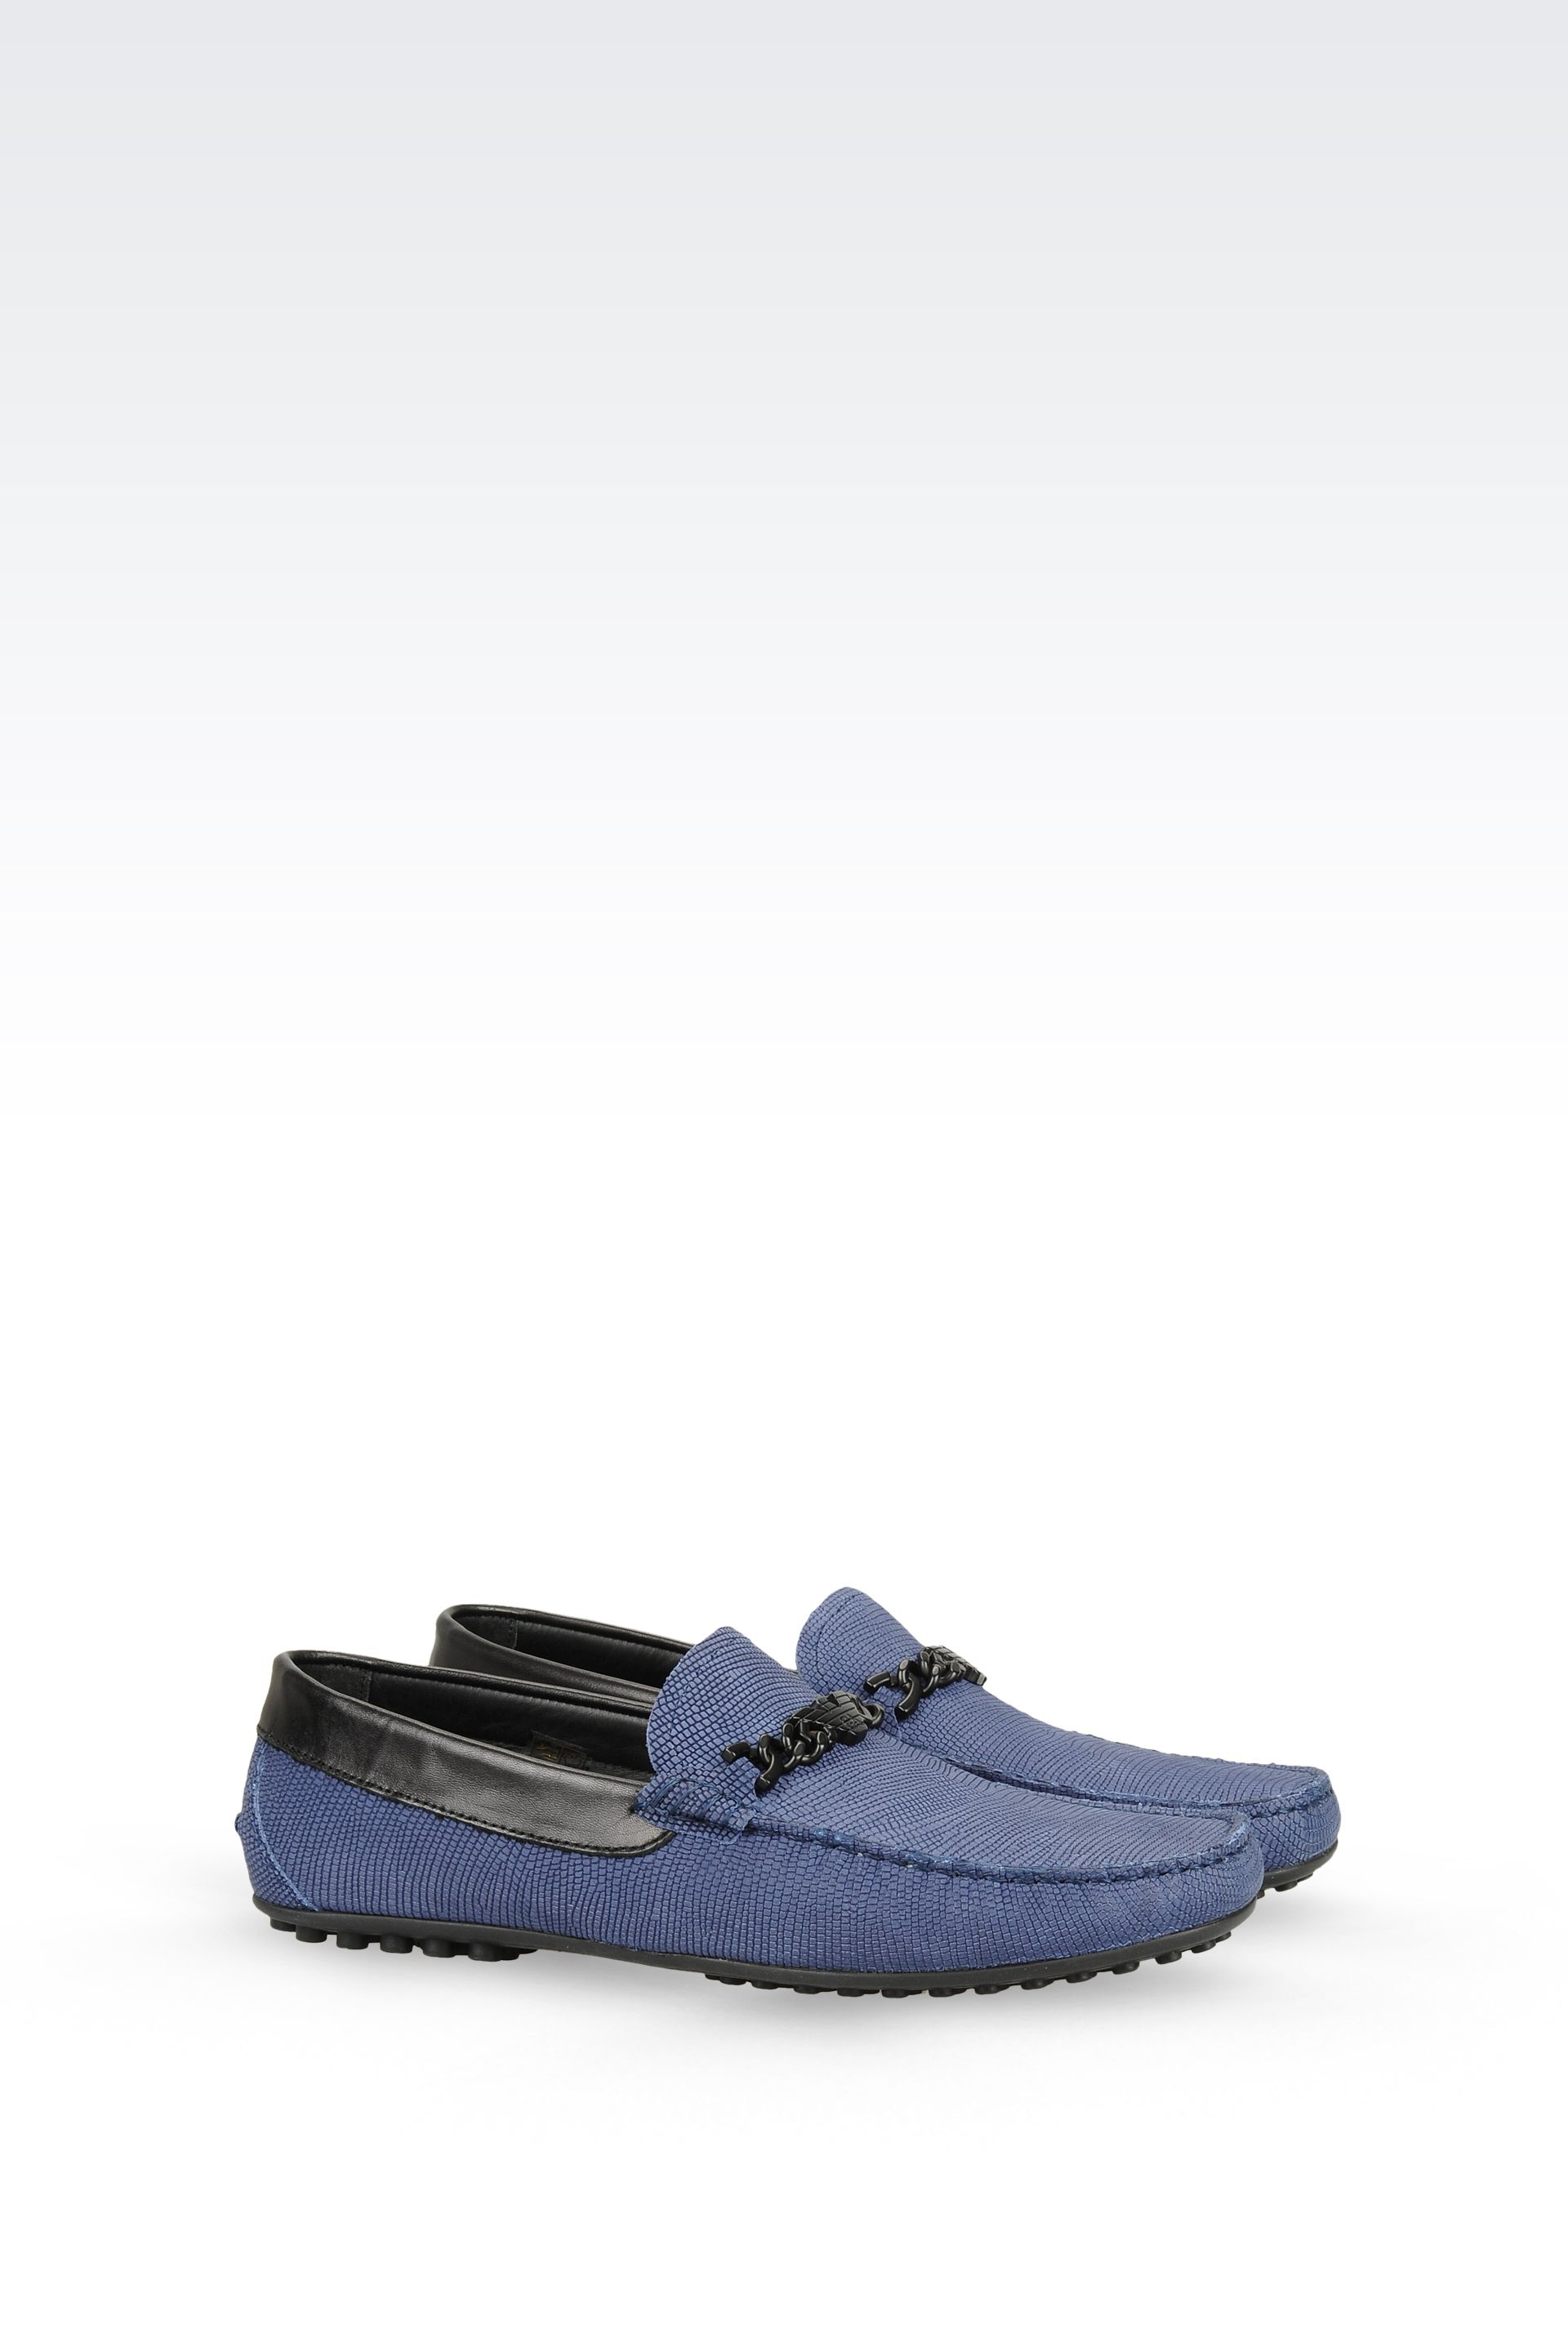 emporio armani driving shoe in calfskin in blue for lyst